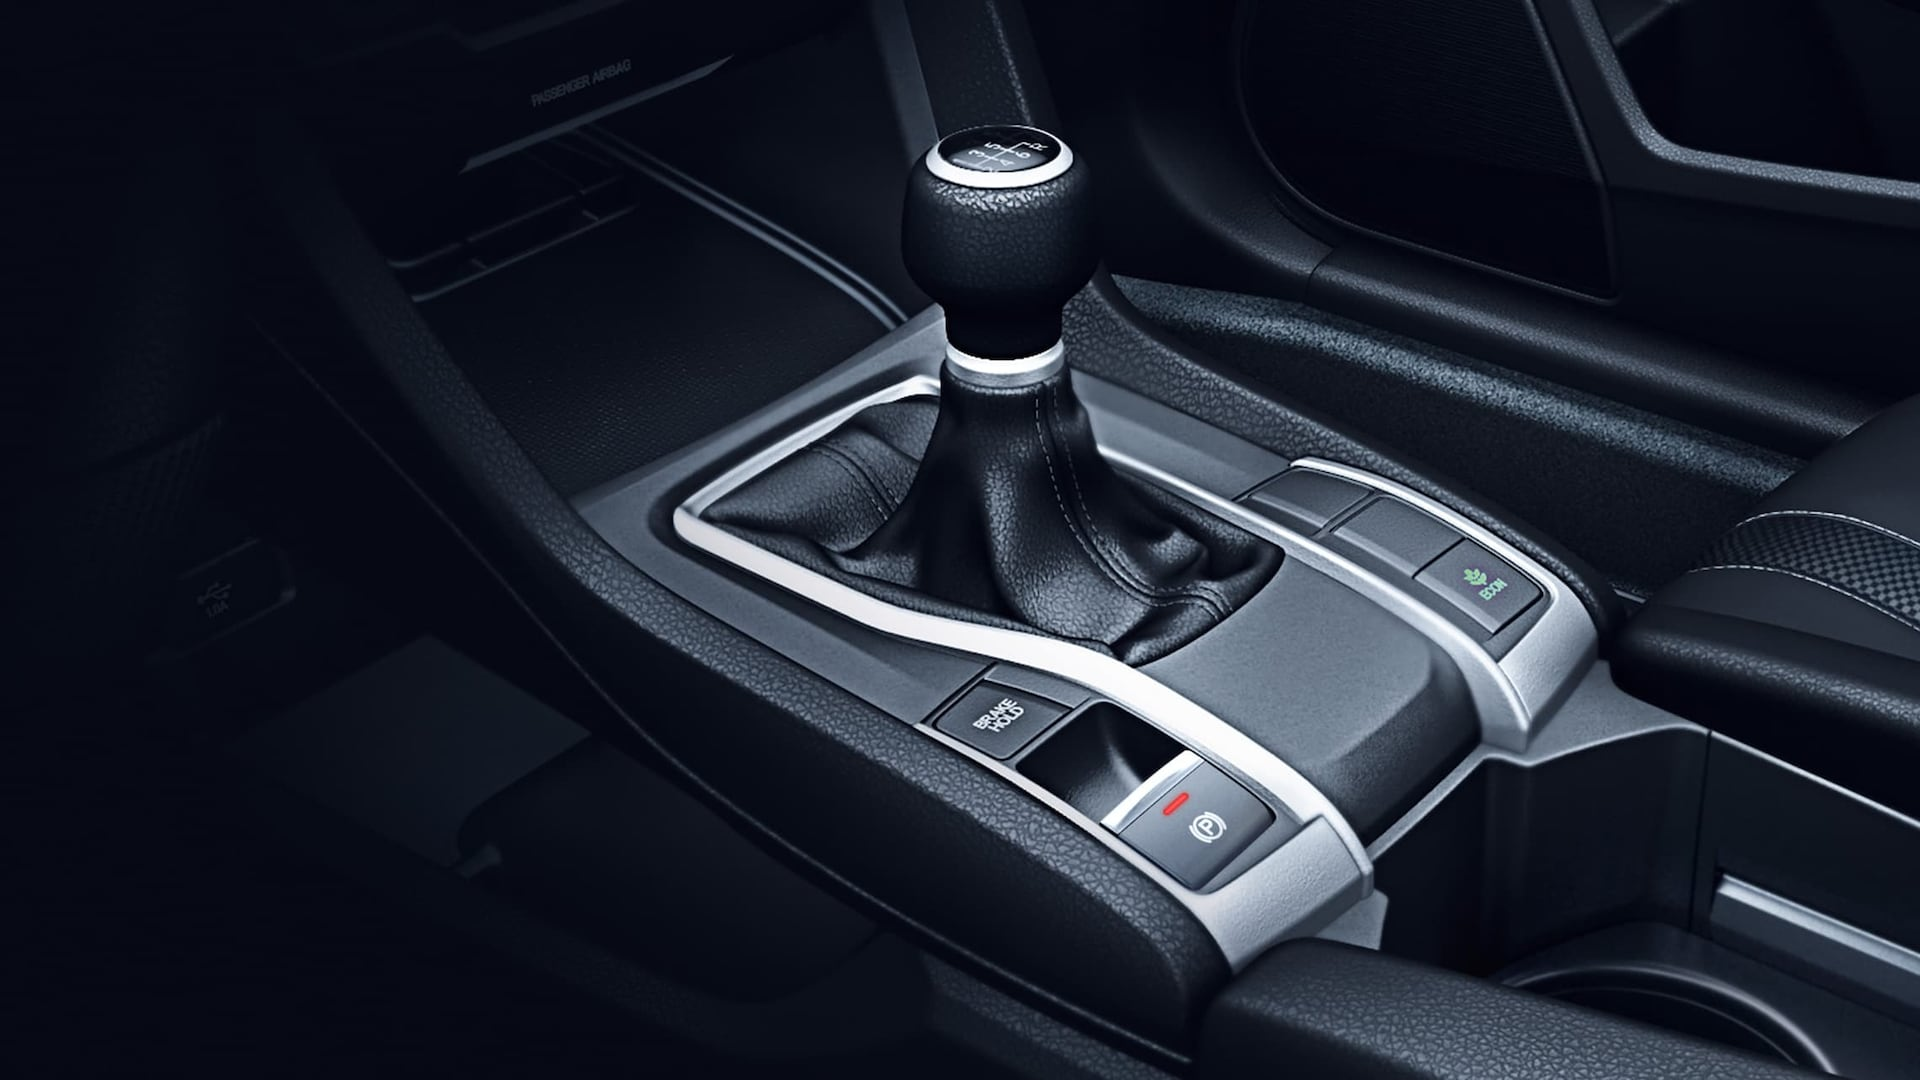 6-speed manual transmission shifter detail in 2019 Honda Civic LX Sedan.